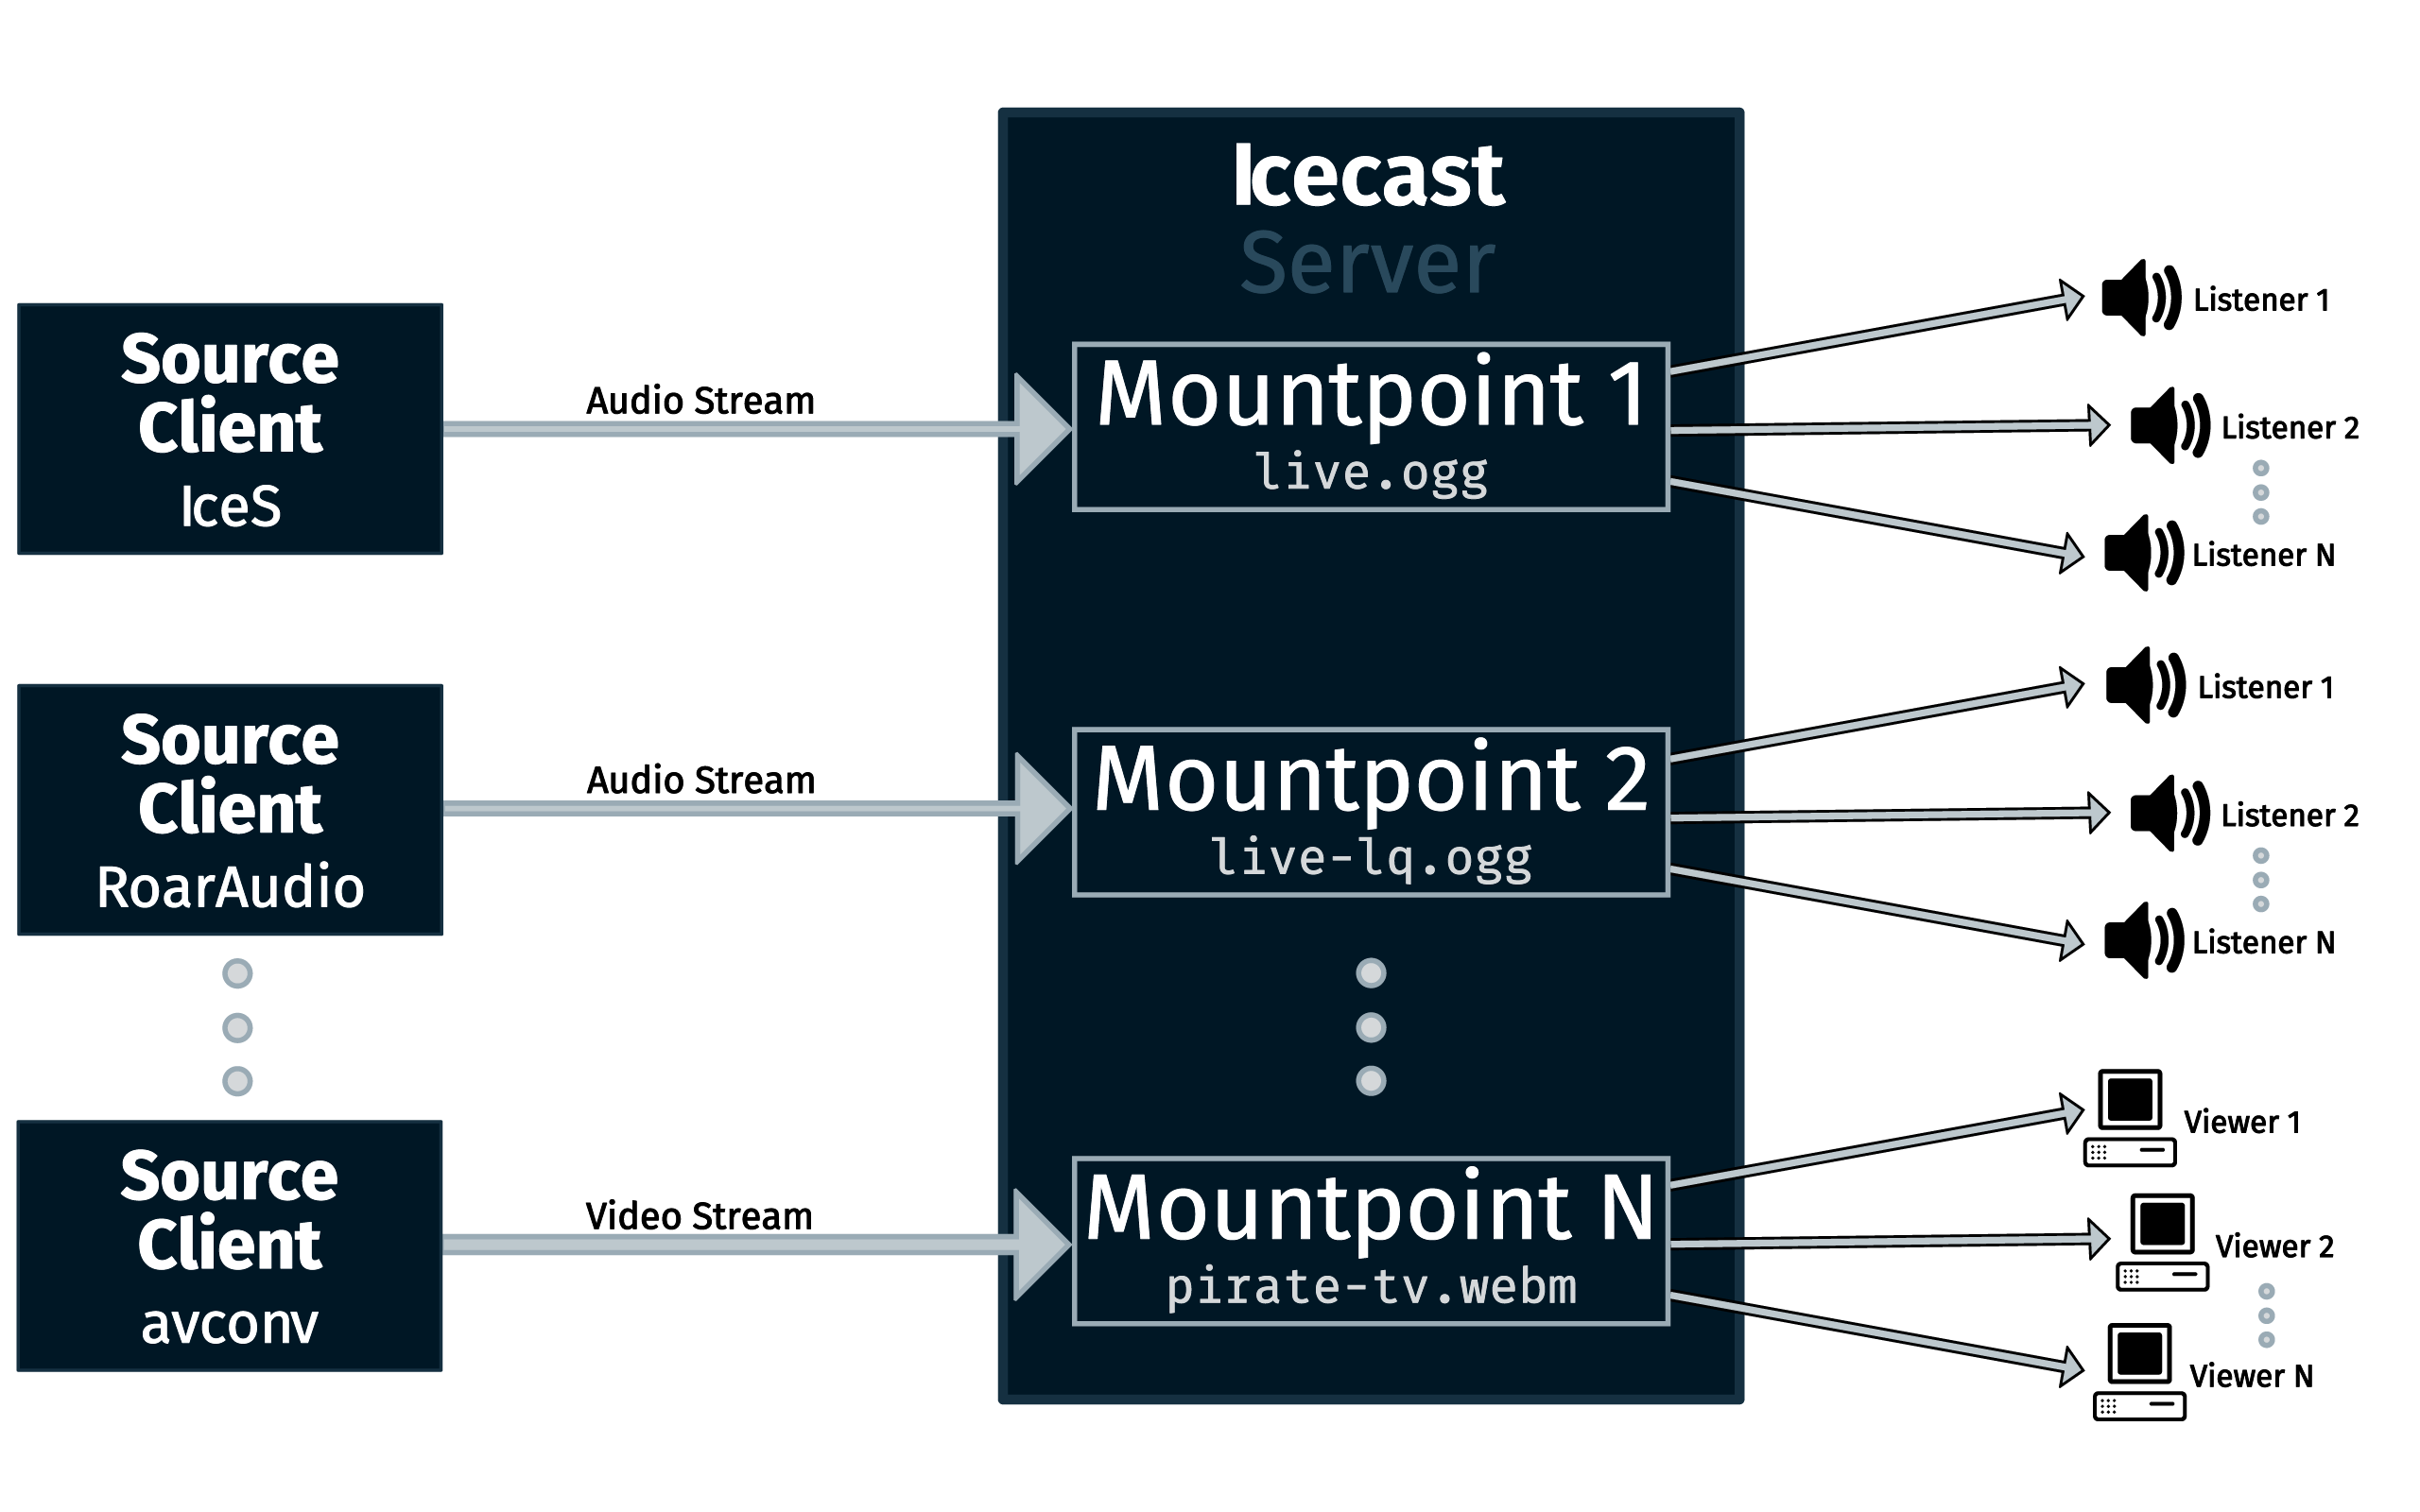 Diagram showing the components of an Icecast Server